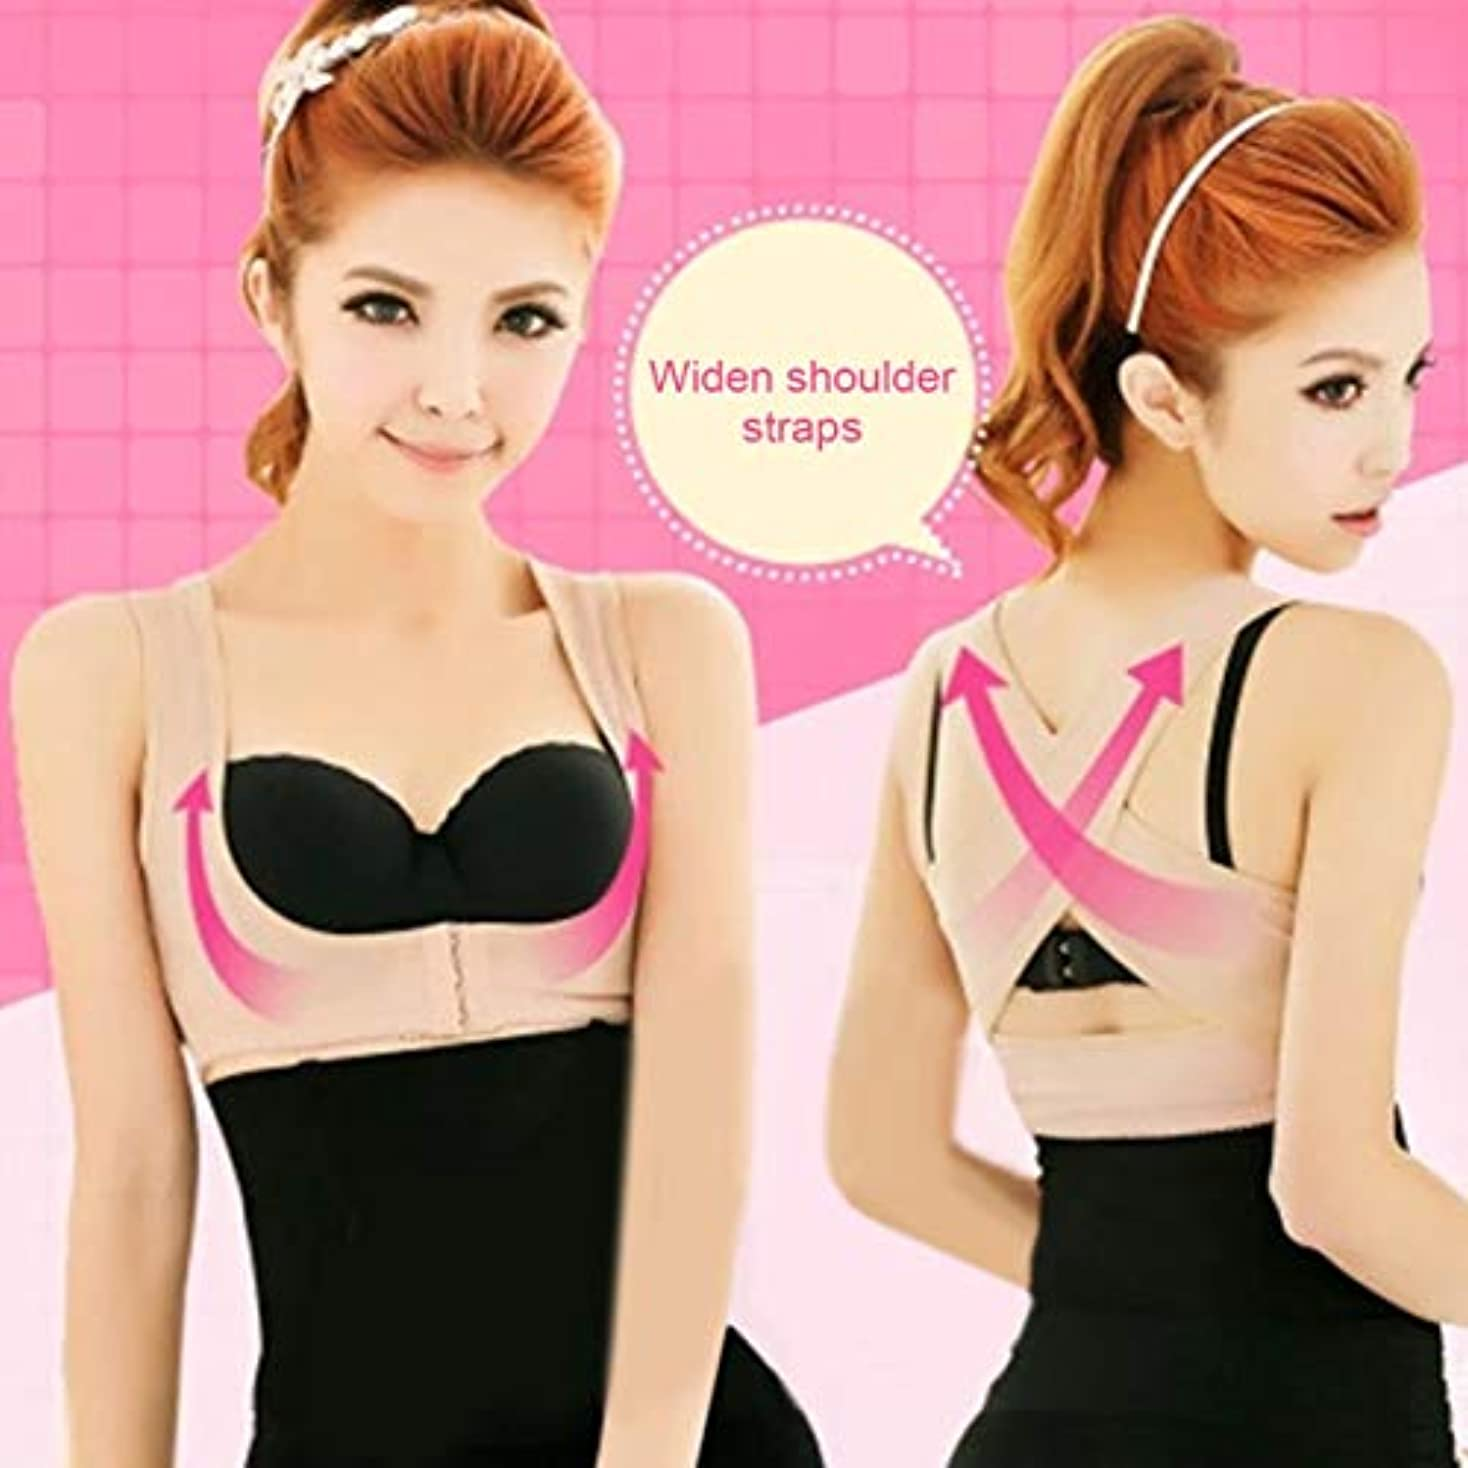 ロイヤリティ展望台木製Posture Corrector Women Chest Brace Up Prevent Chest Sagging And Humpback Bra Cross Strap Vest Body Shaper Slimming Underwear